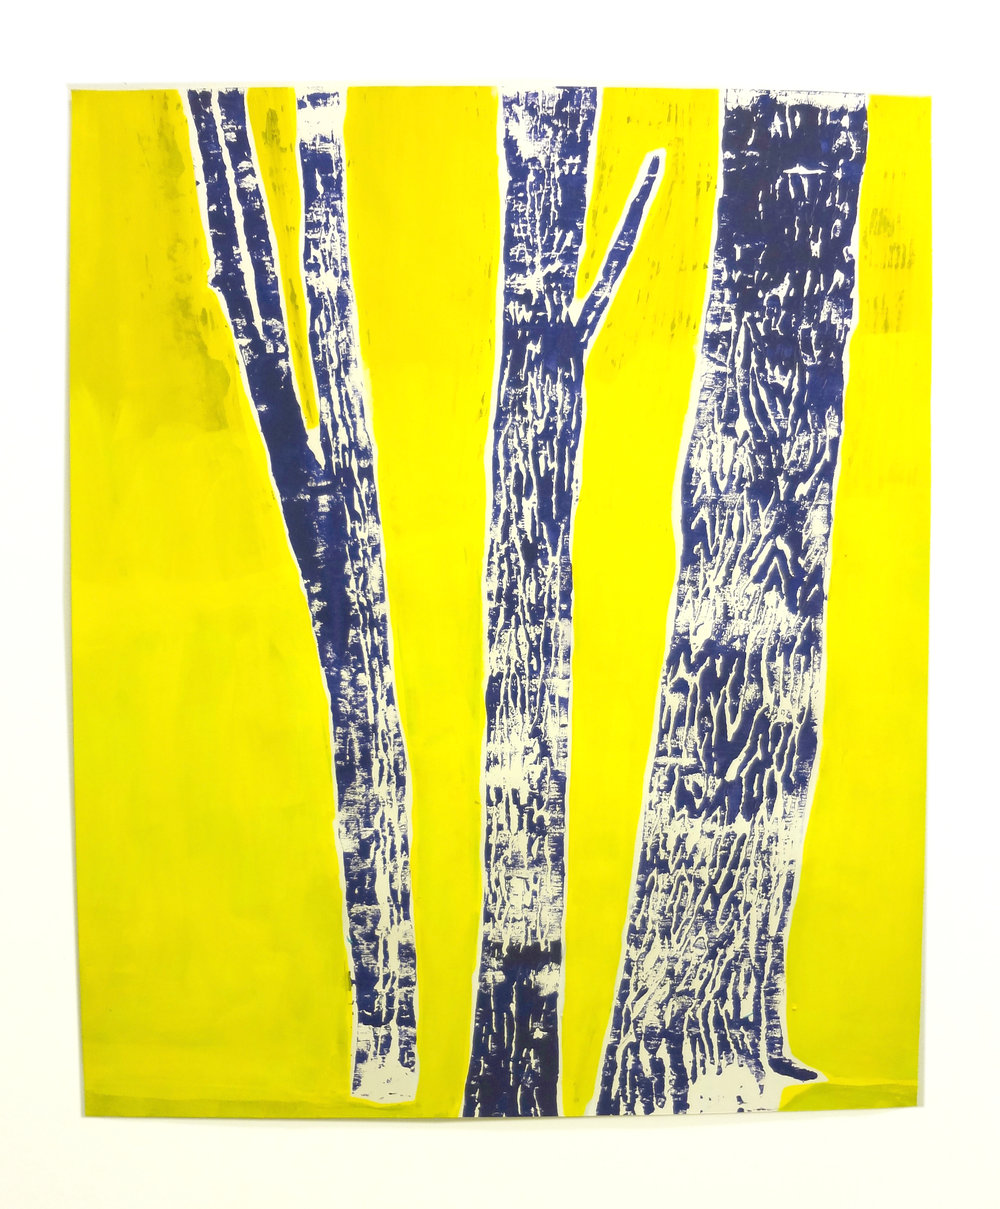 Meghan Gerety  Indigo on Yello Trees , 2012 blockprint ink on blockprint paper 34 x 30 in.